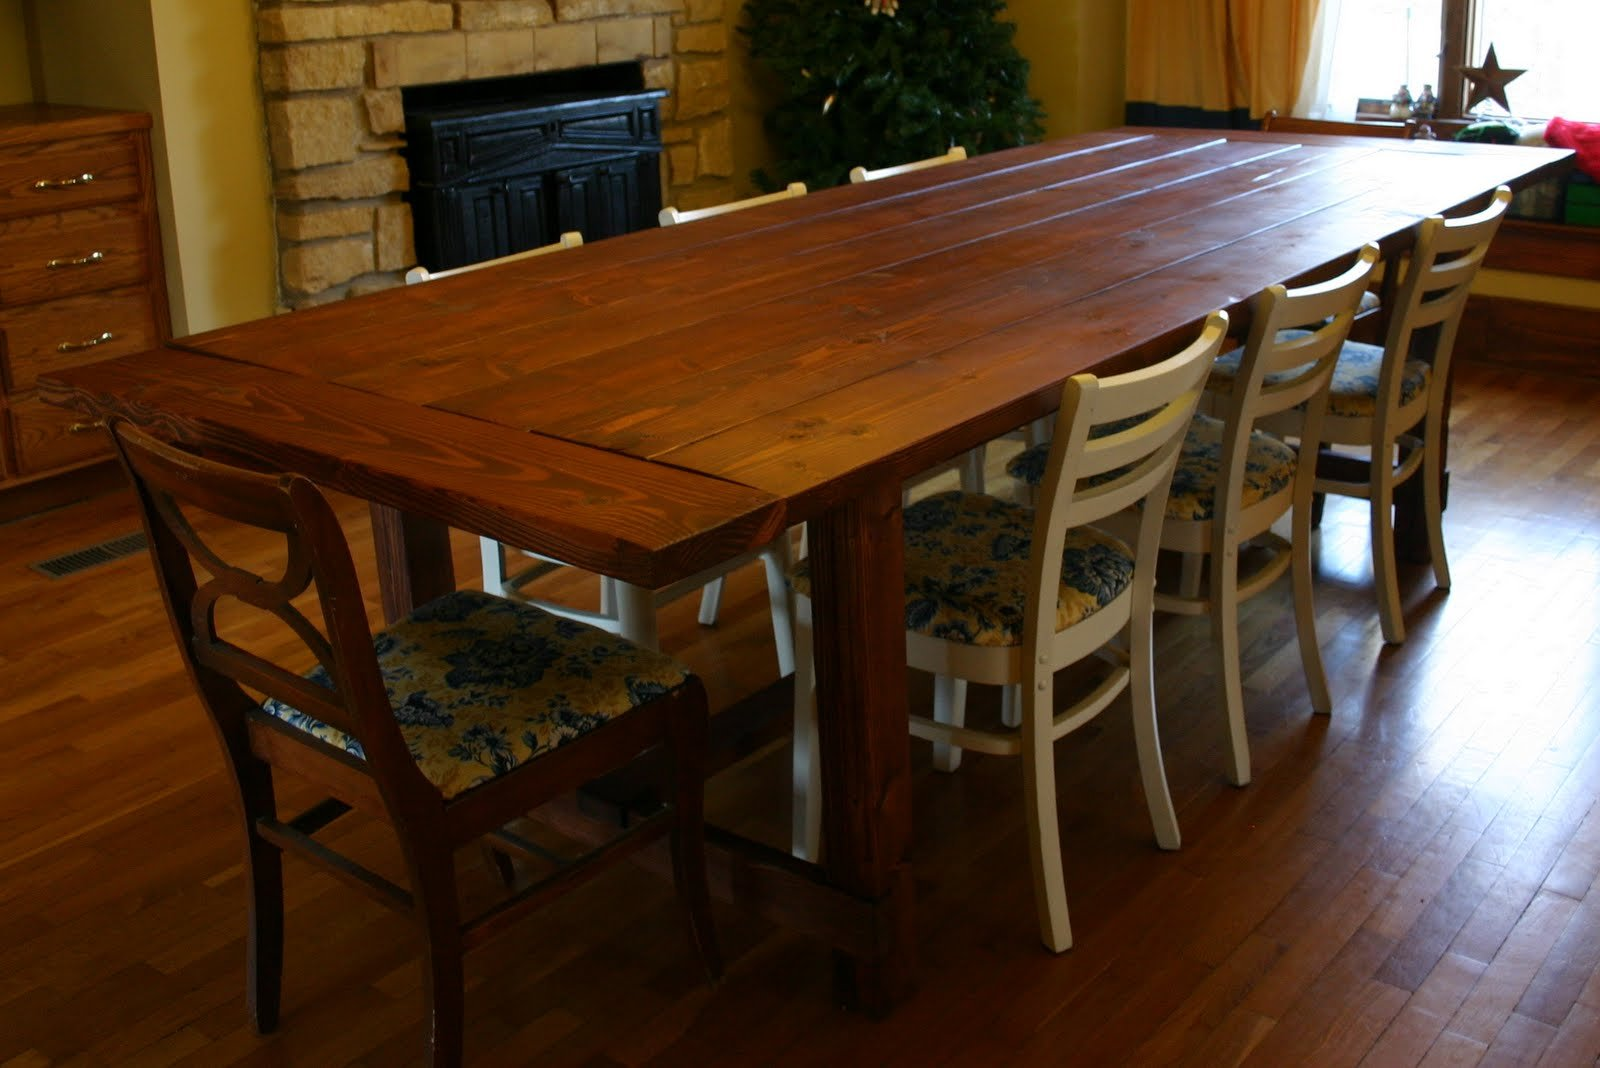 Rustic dining room tables - Dining Room Table Plans